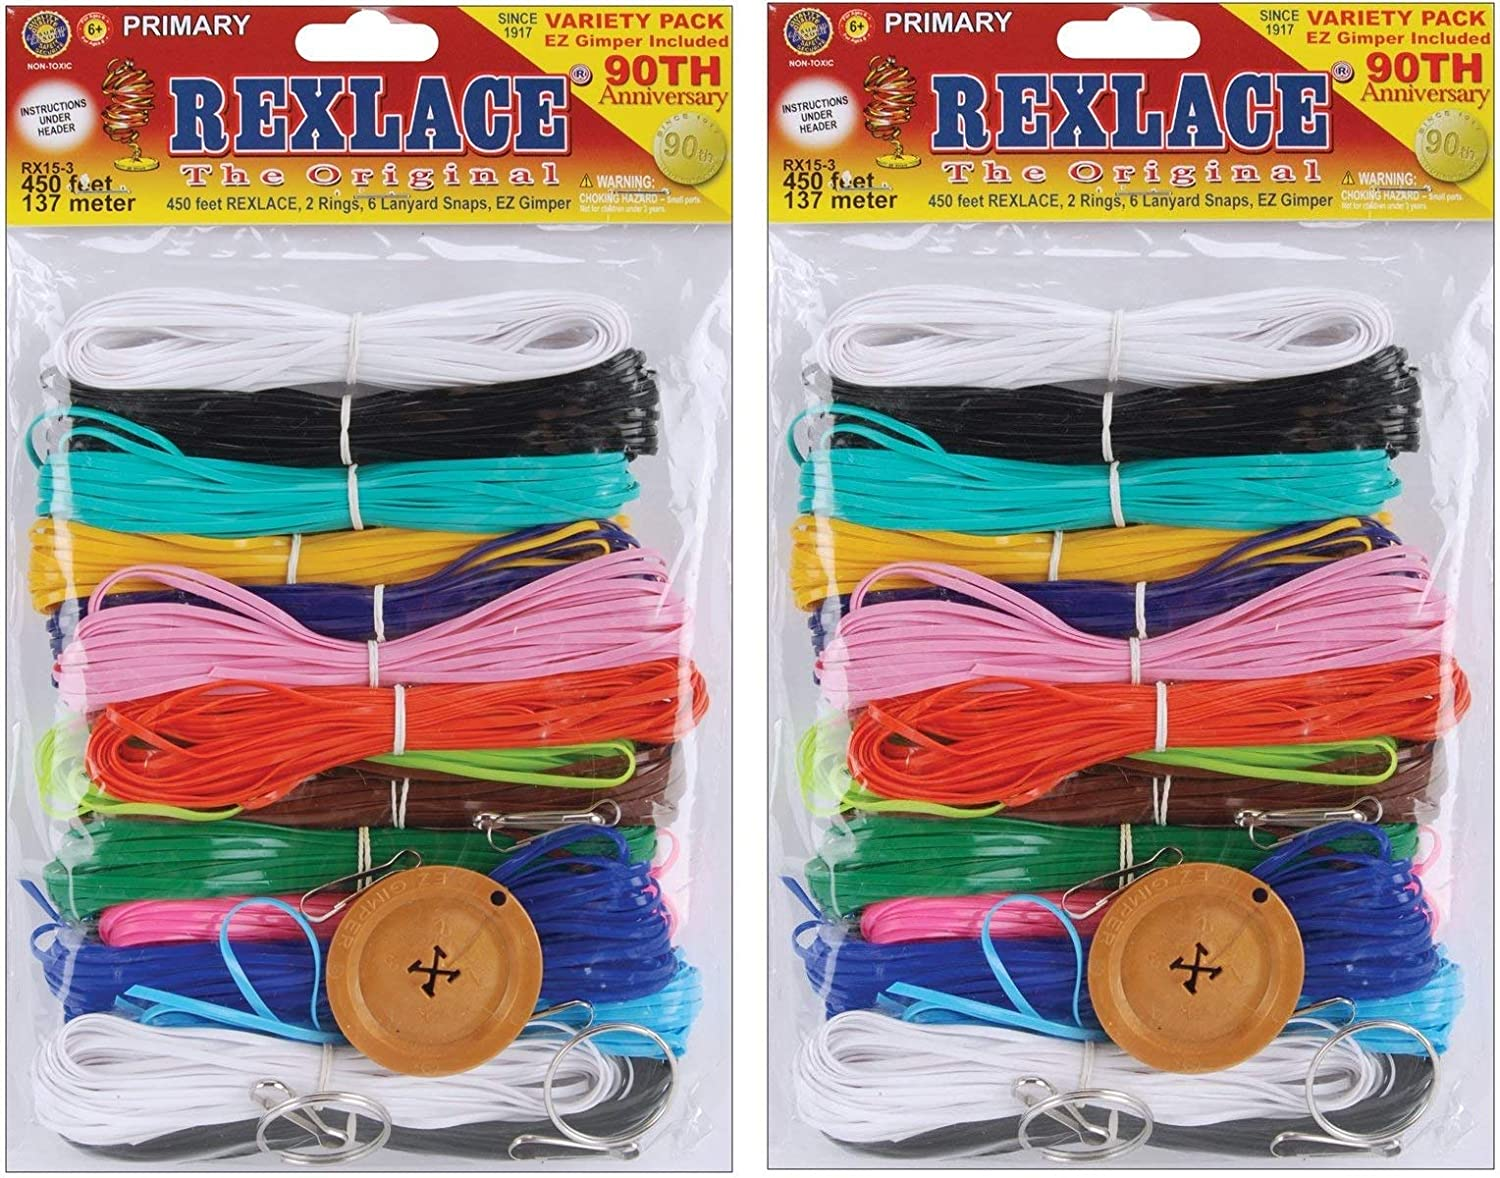 66d2cb1404a3f Pepperell RX-153 Rexlace Plastic Lacing Cord, 450-Feet, Primary